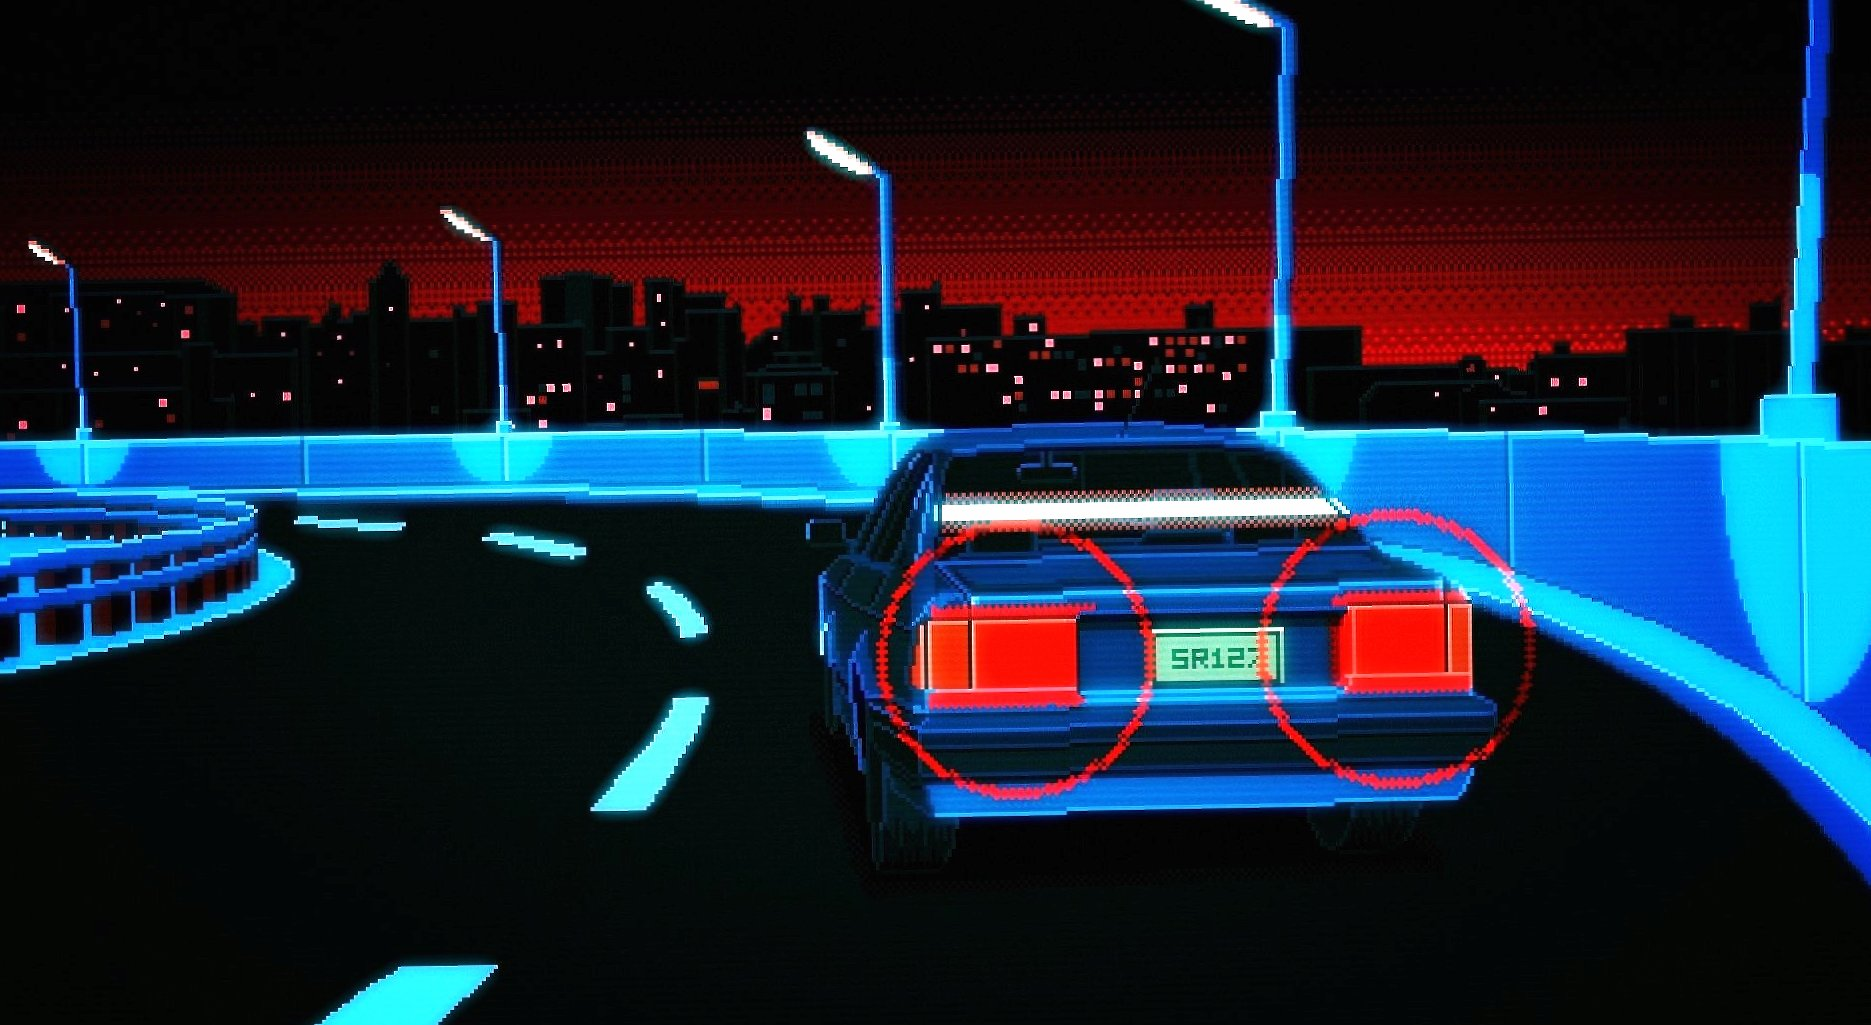 Retro at 1600 x 1200 size wallpapers HD quality